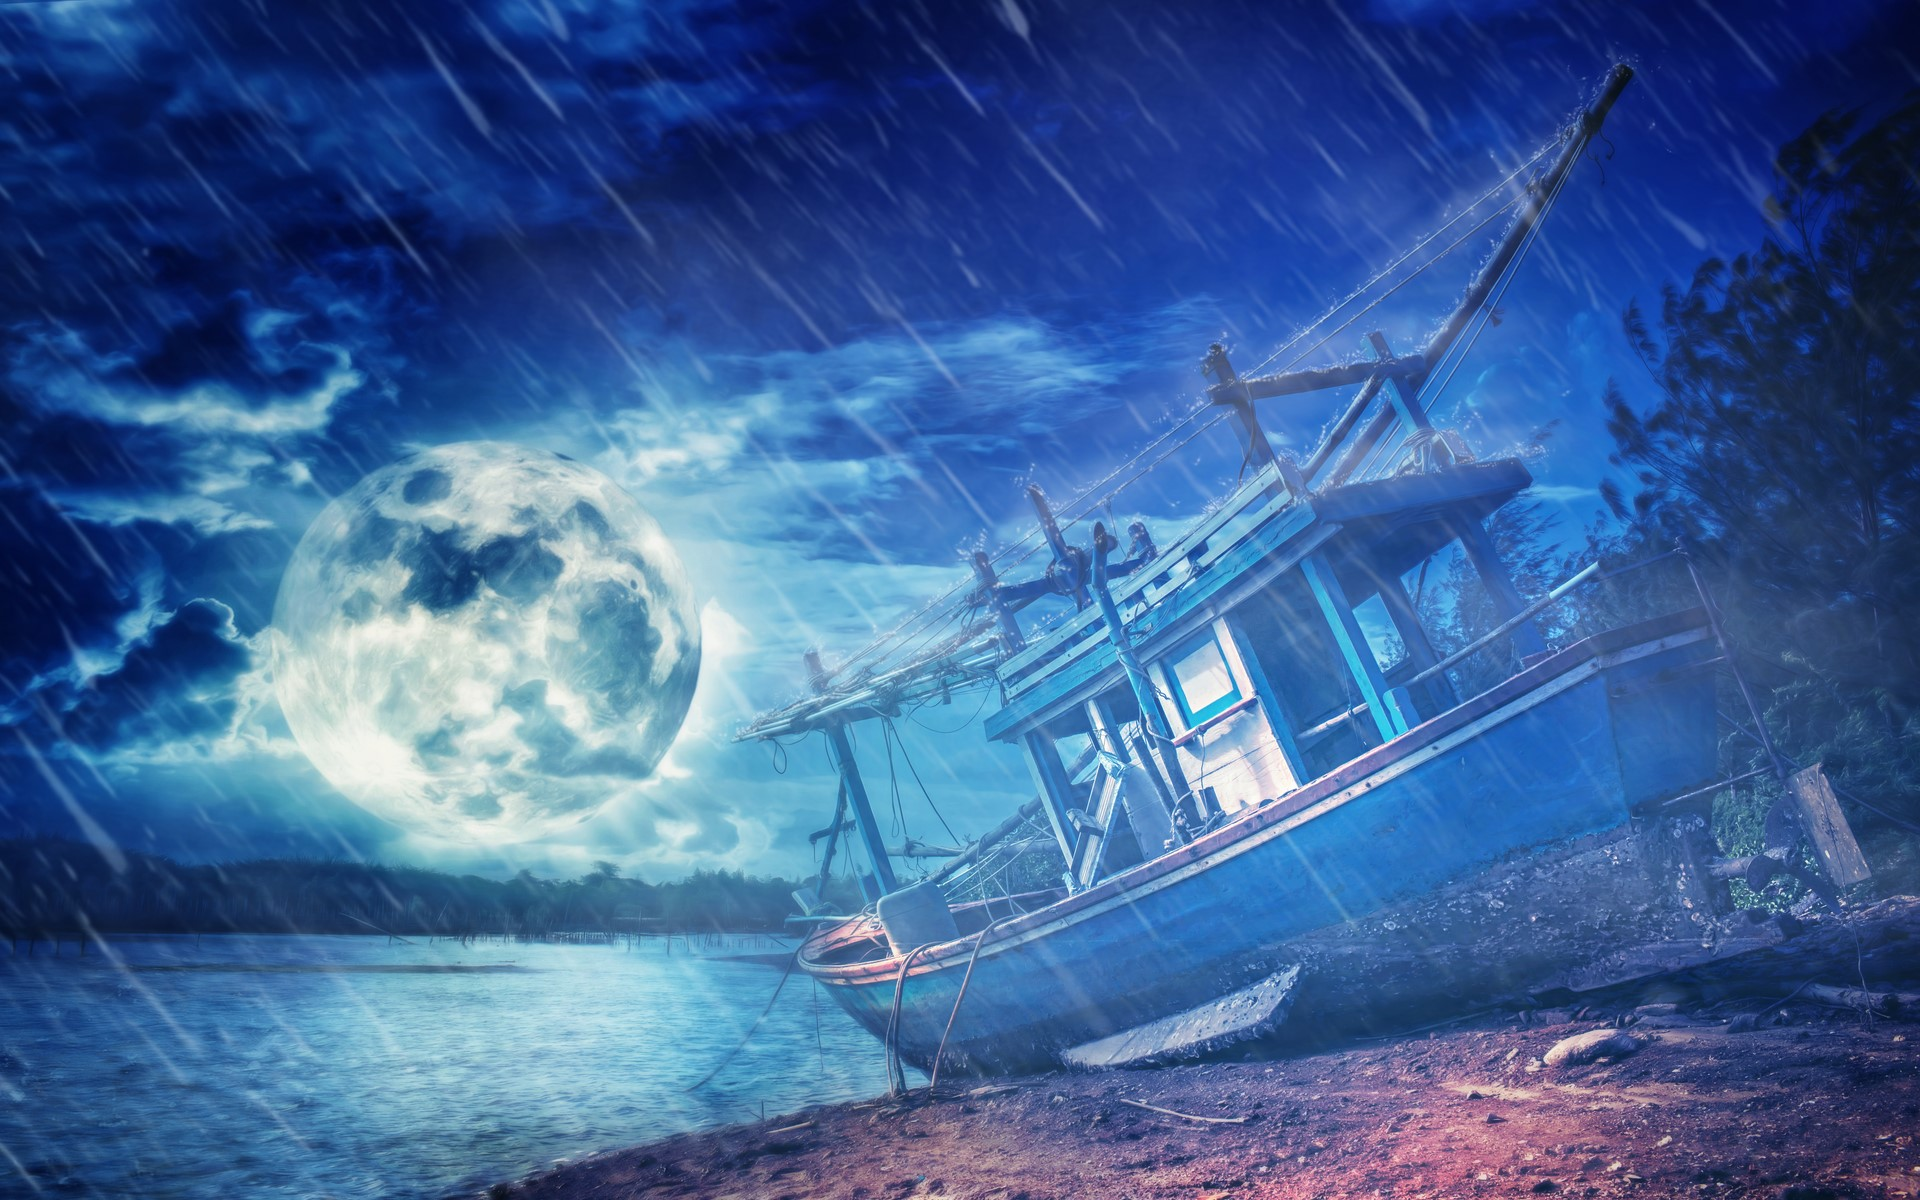 Download Stormy Night Wallpaper Gallery